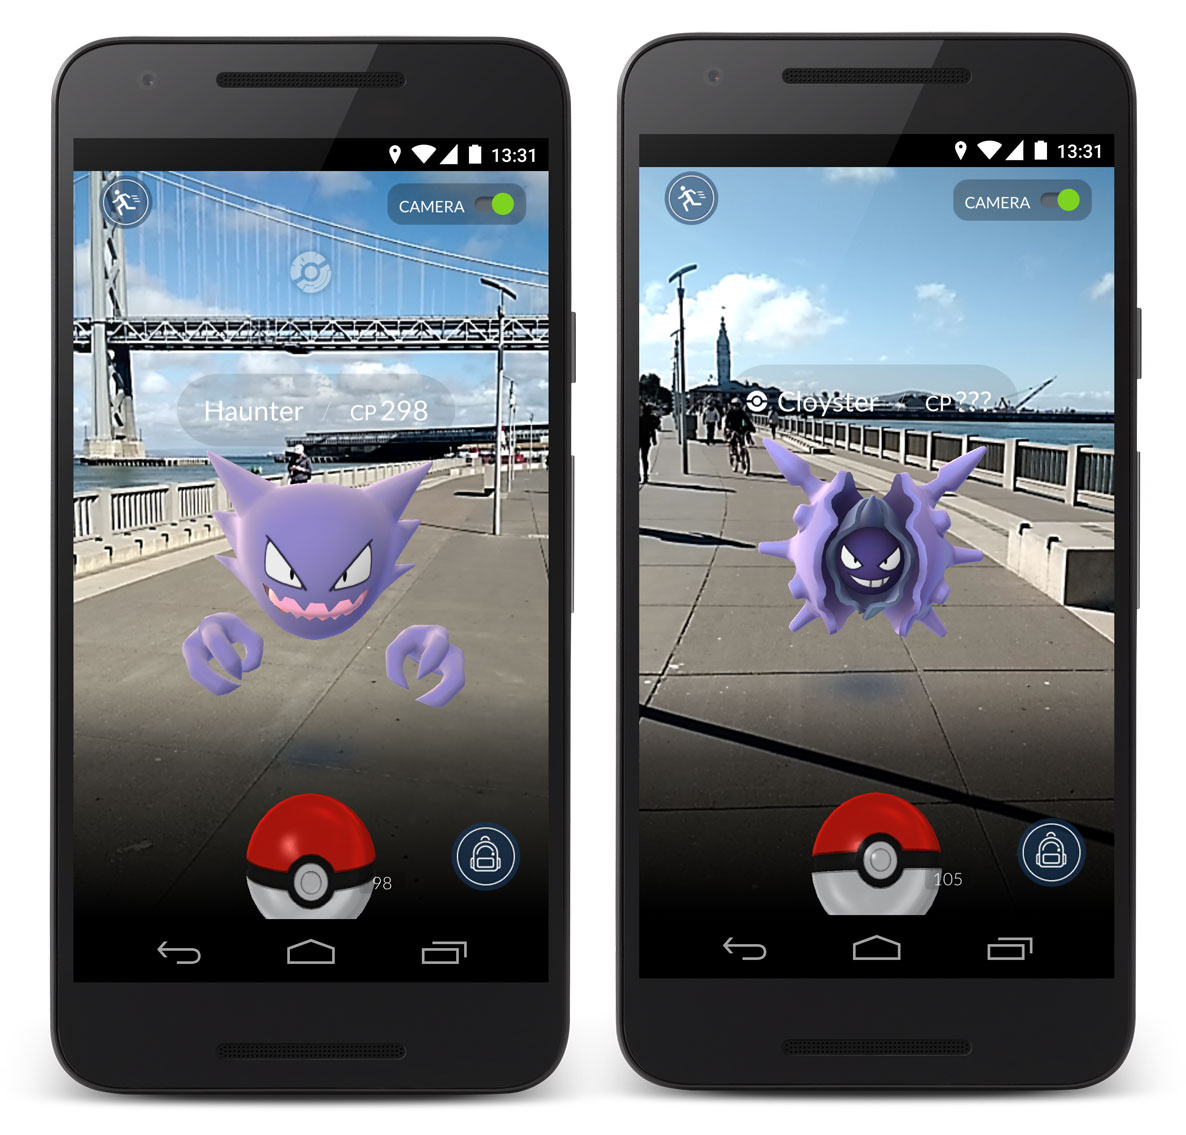 Pokemon GO release Summer 2016 - Camera - Augmented Reality